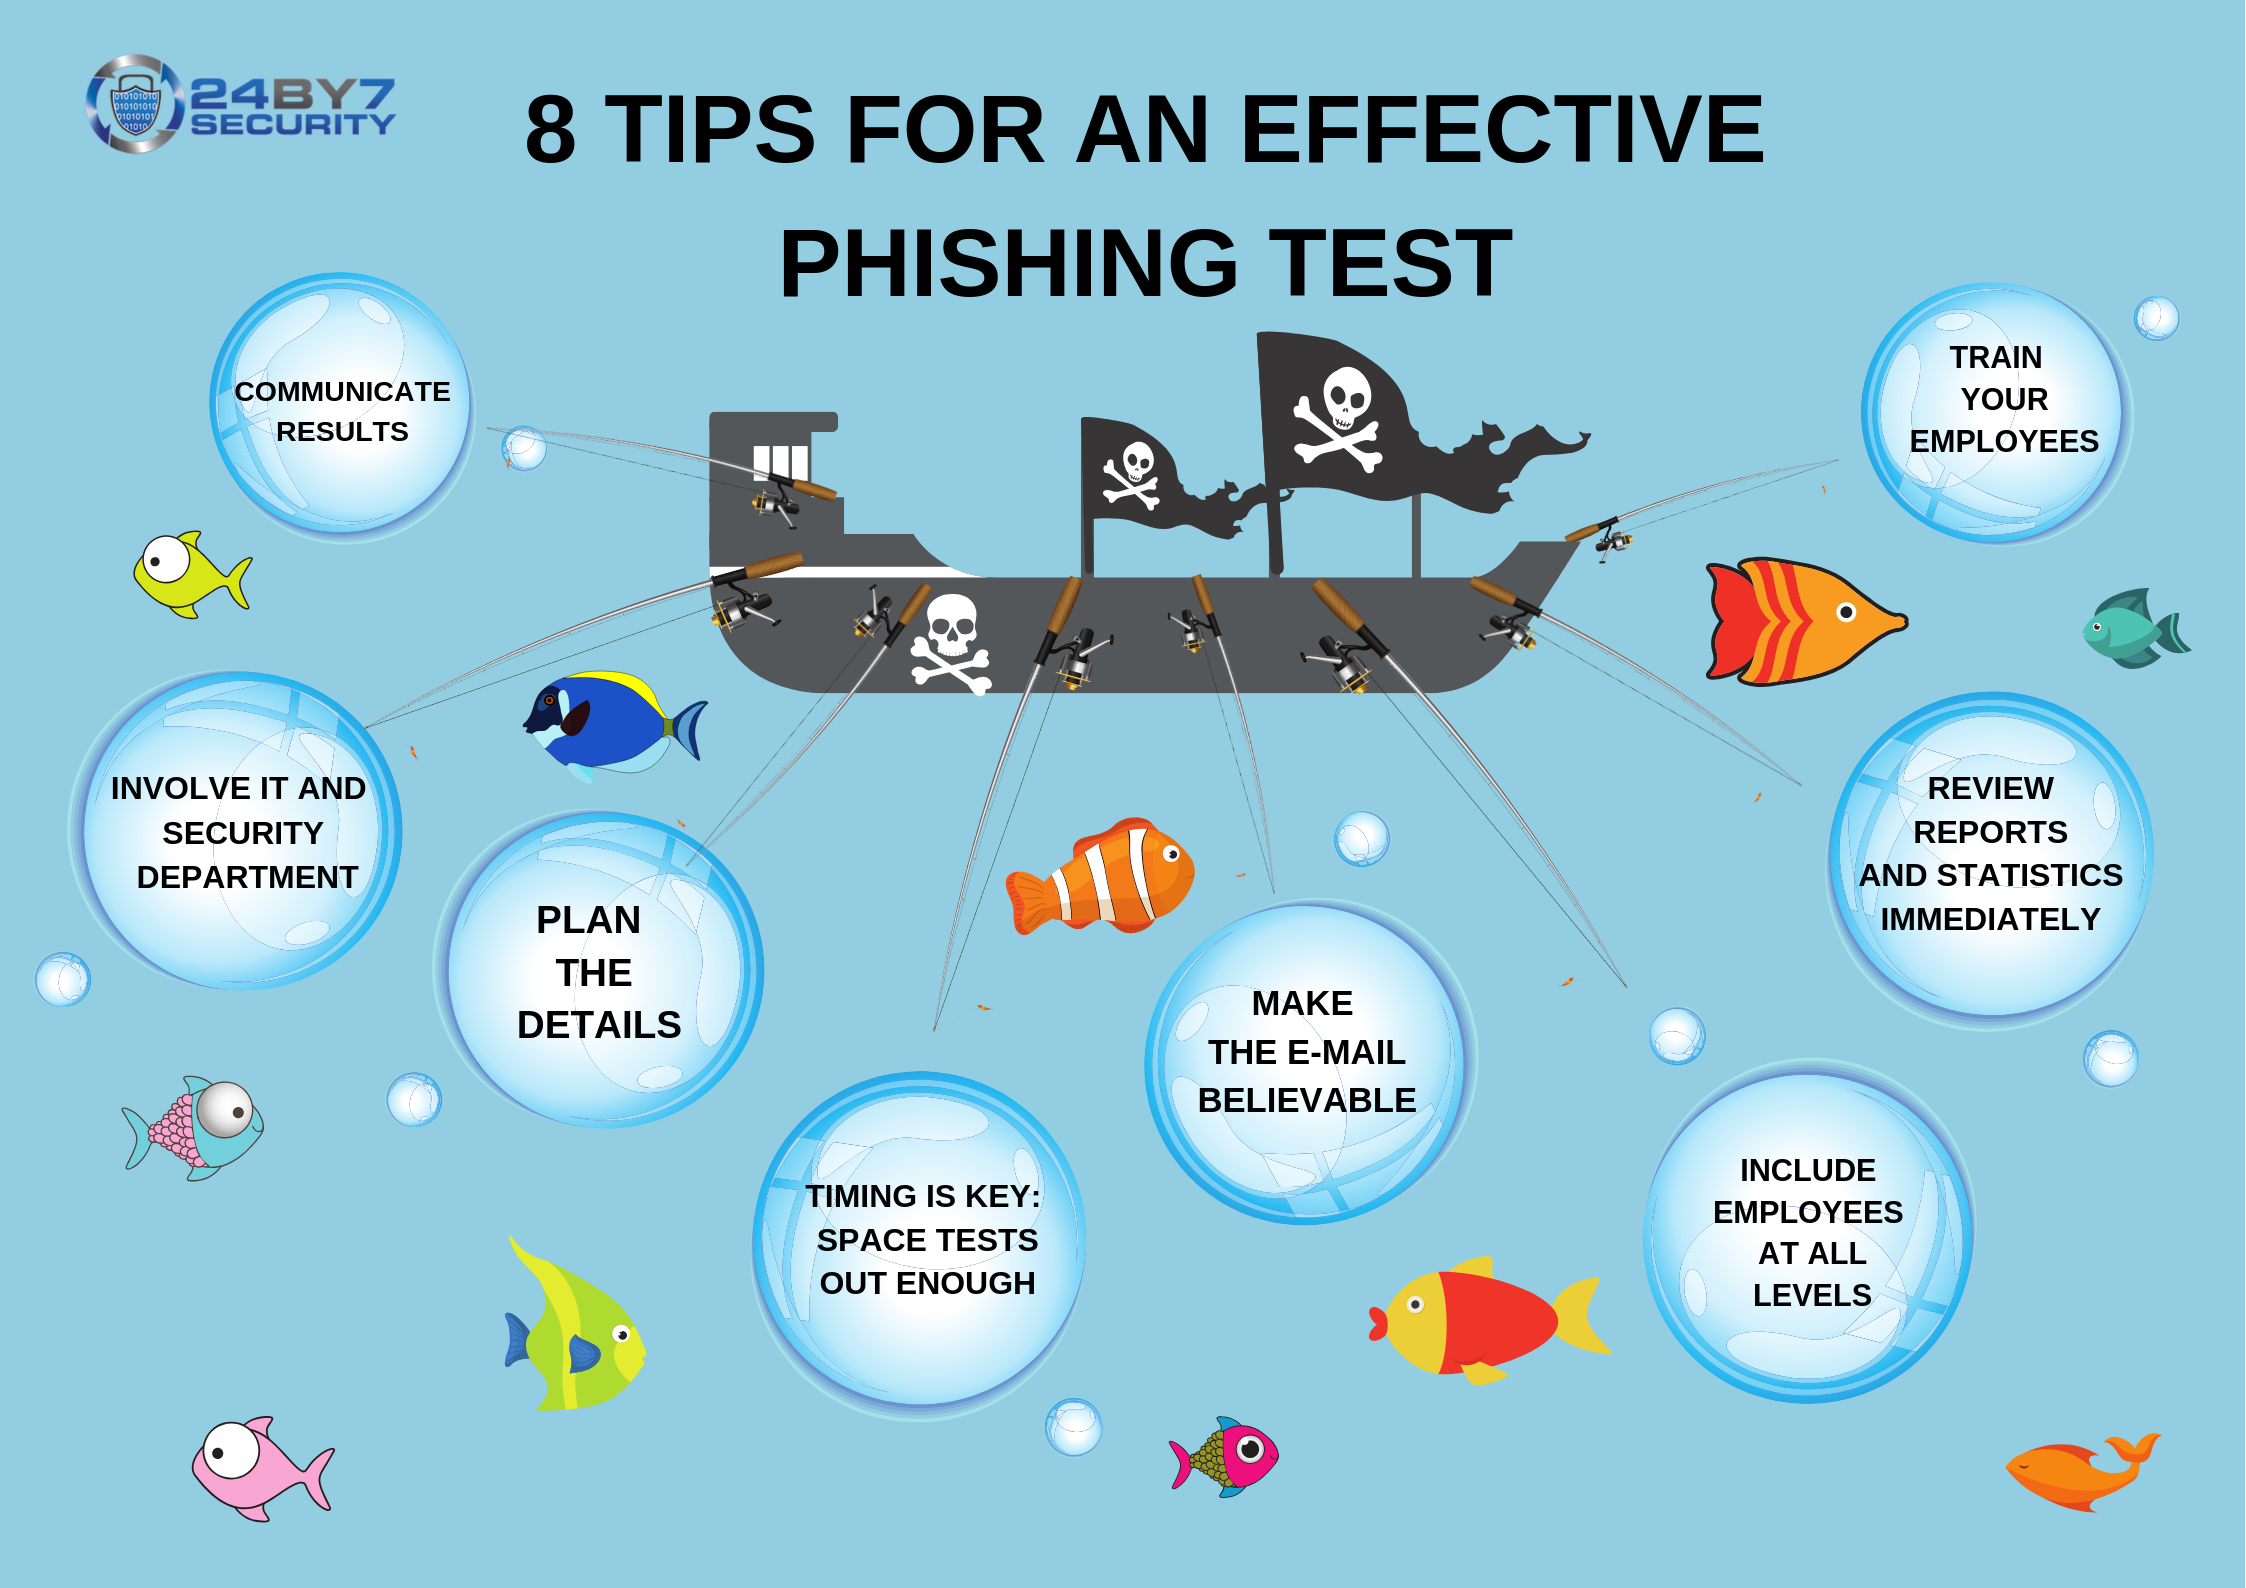 8 tips for an effective phishing test 24By7Security